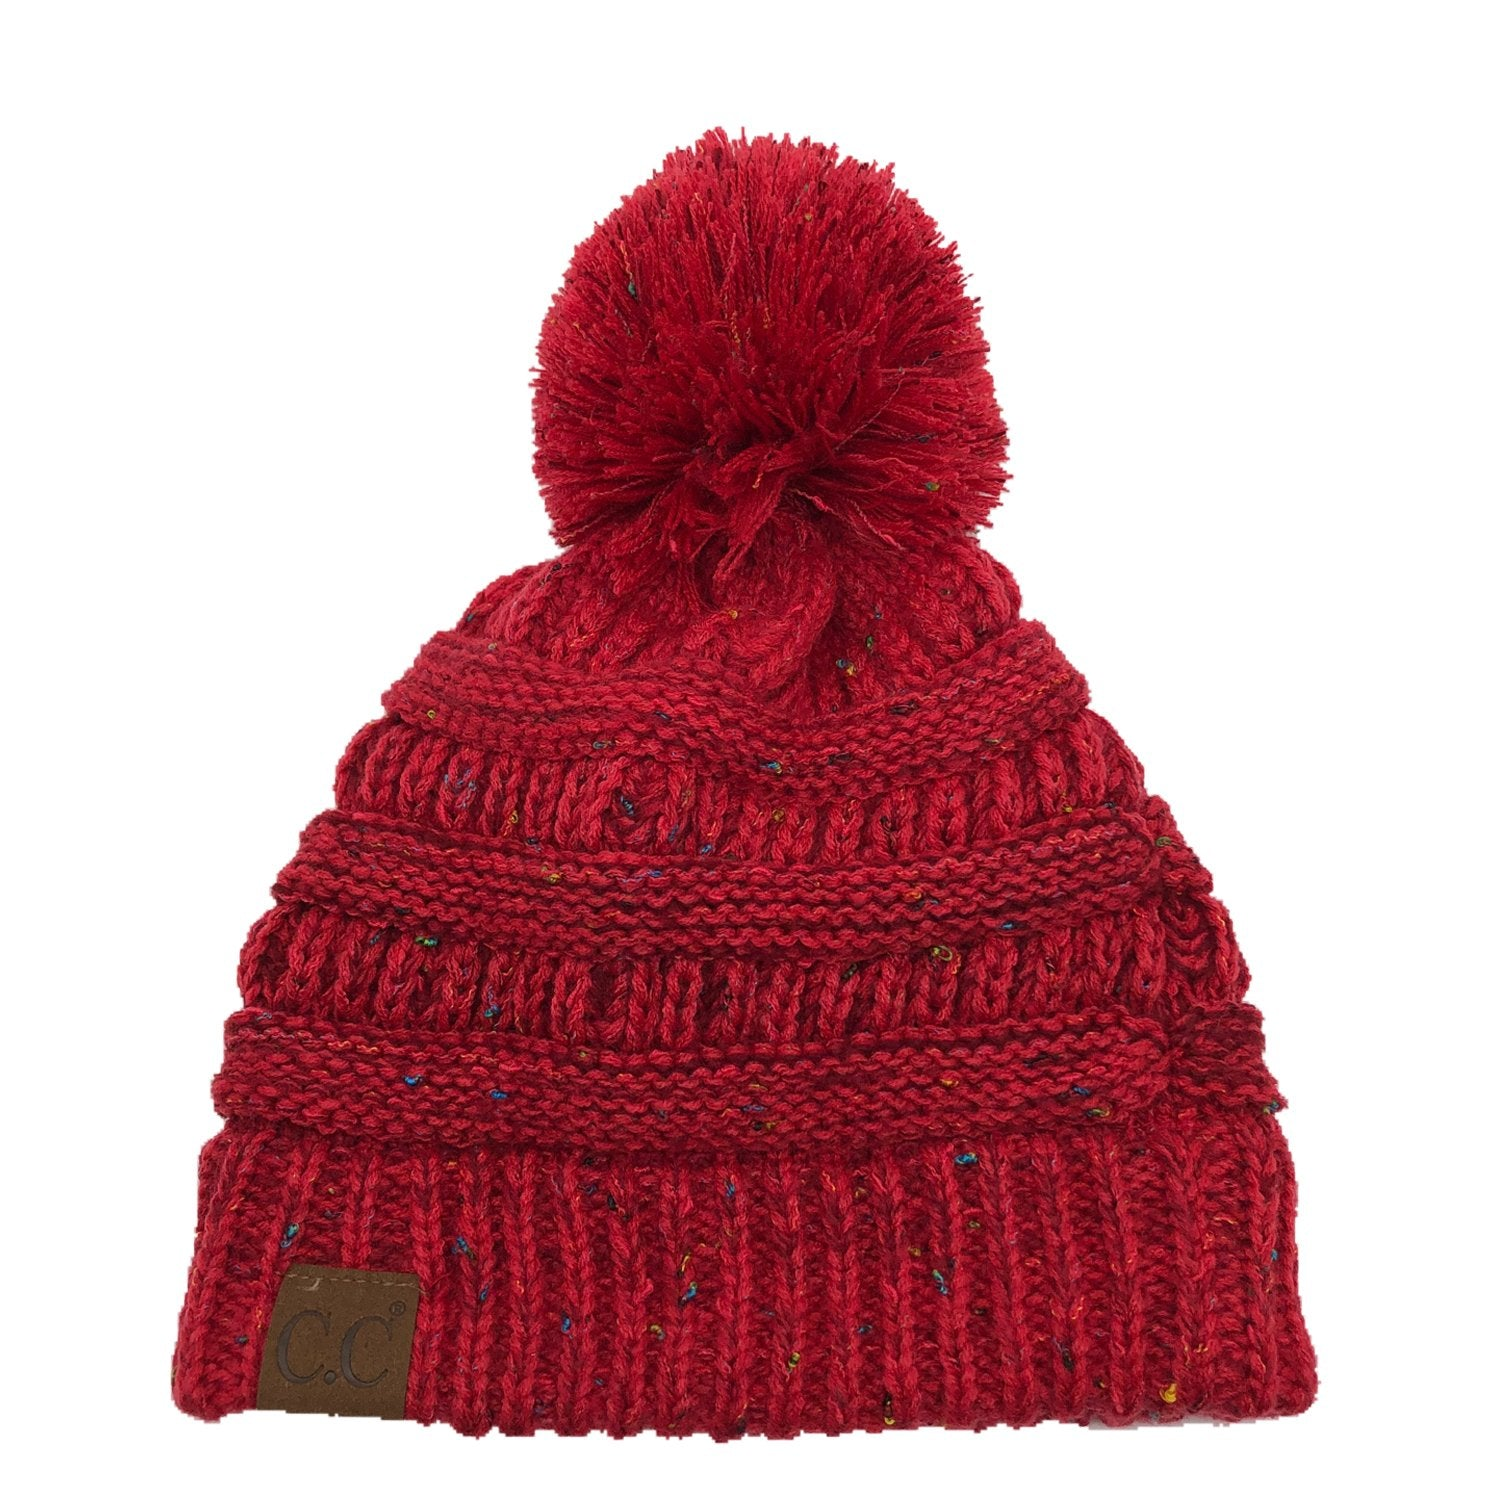 YJ-817 Speckled Pom Beanie - Red